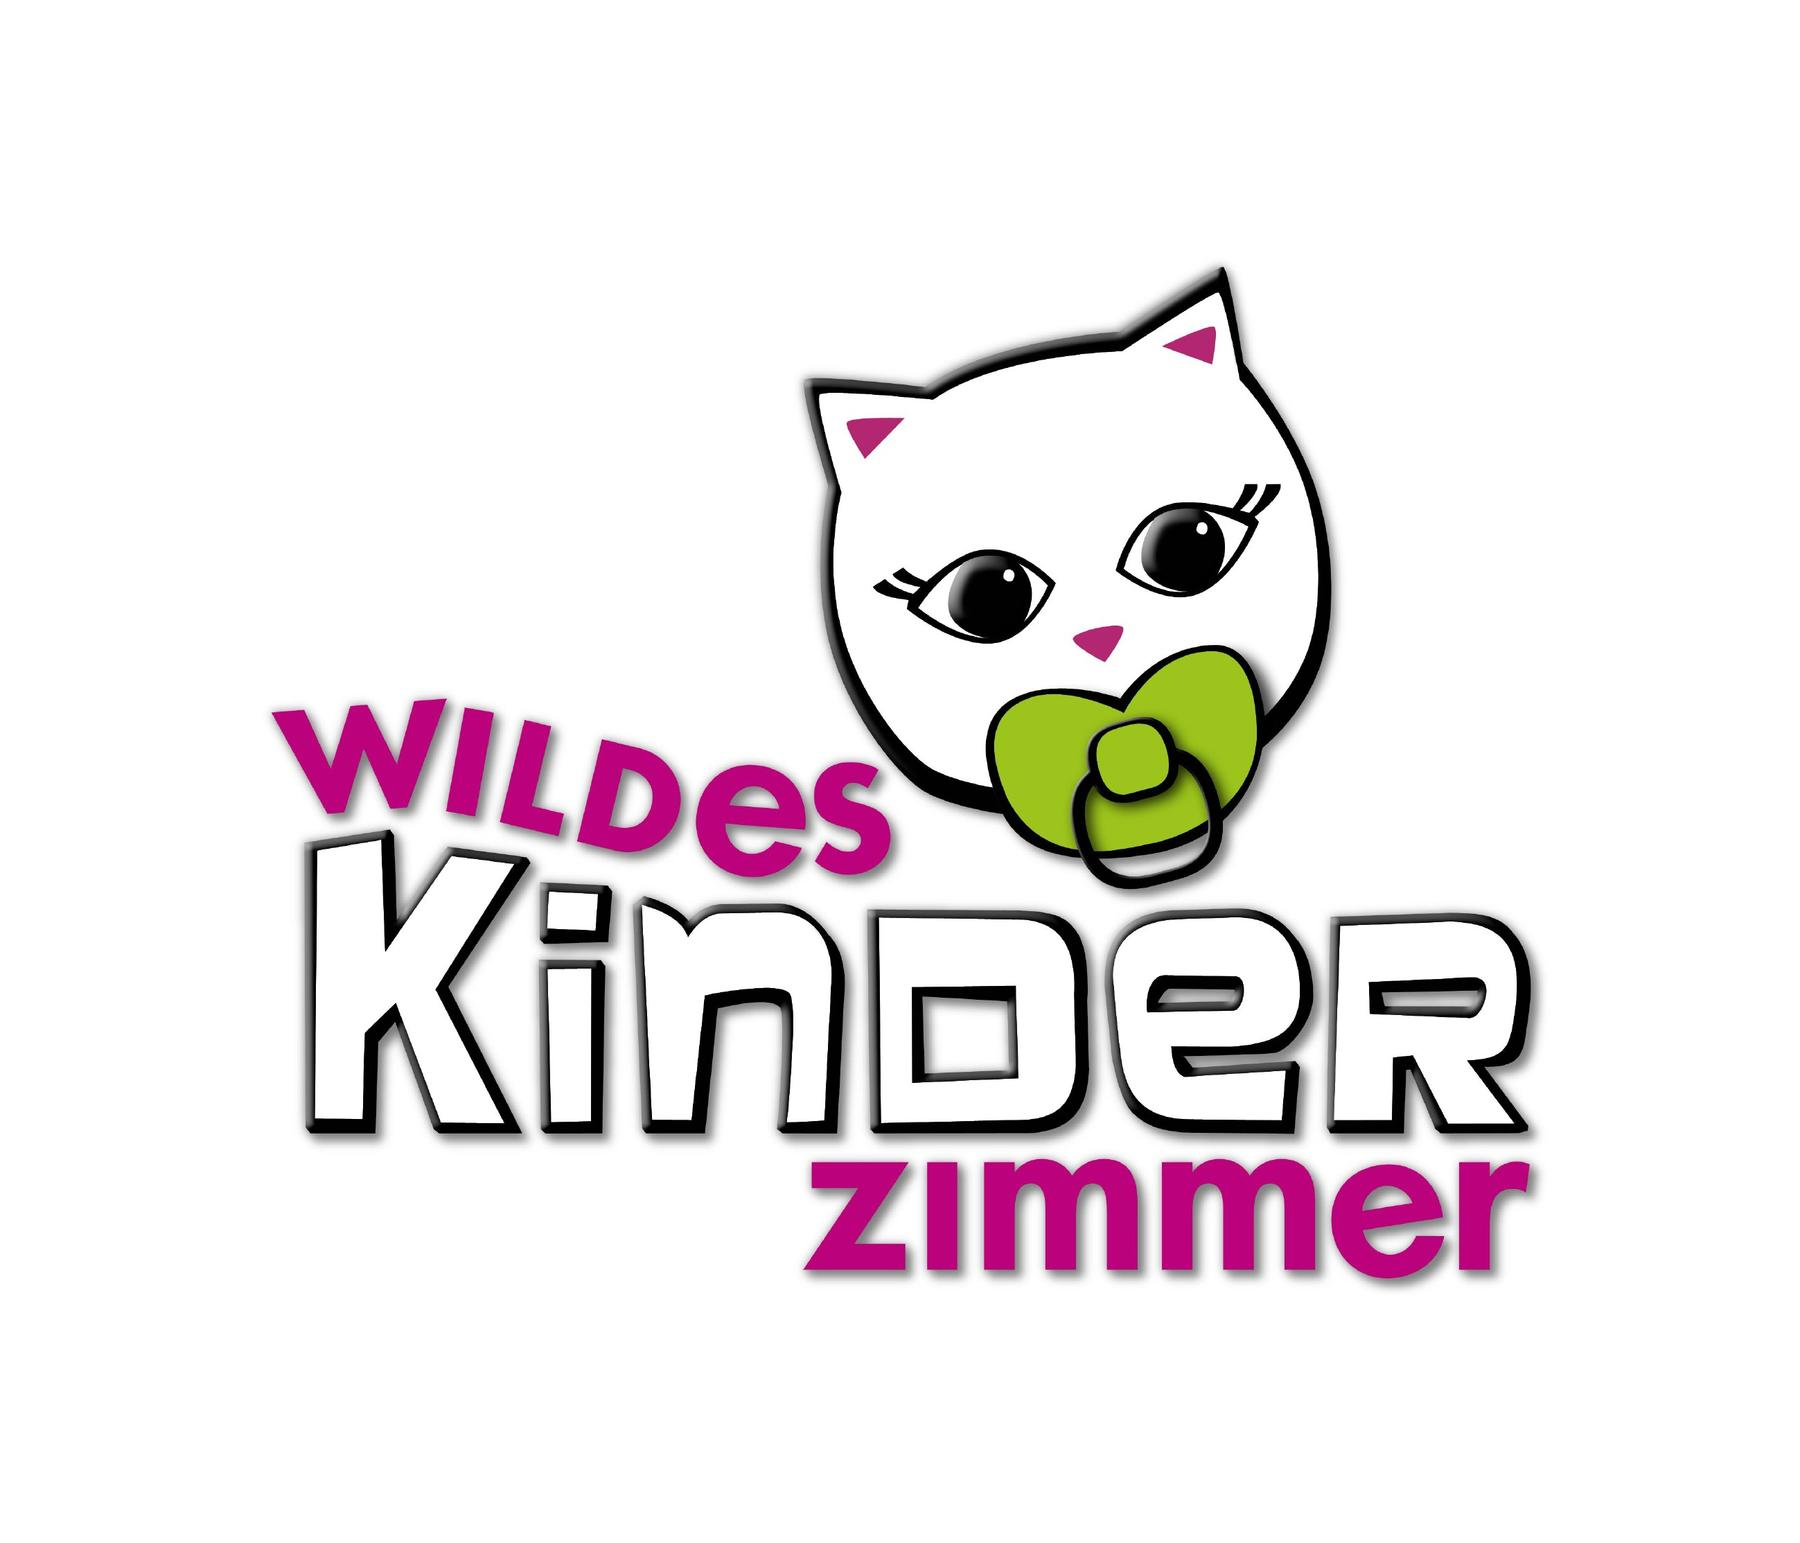 Wildes Kinderzimmer